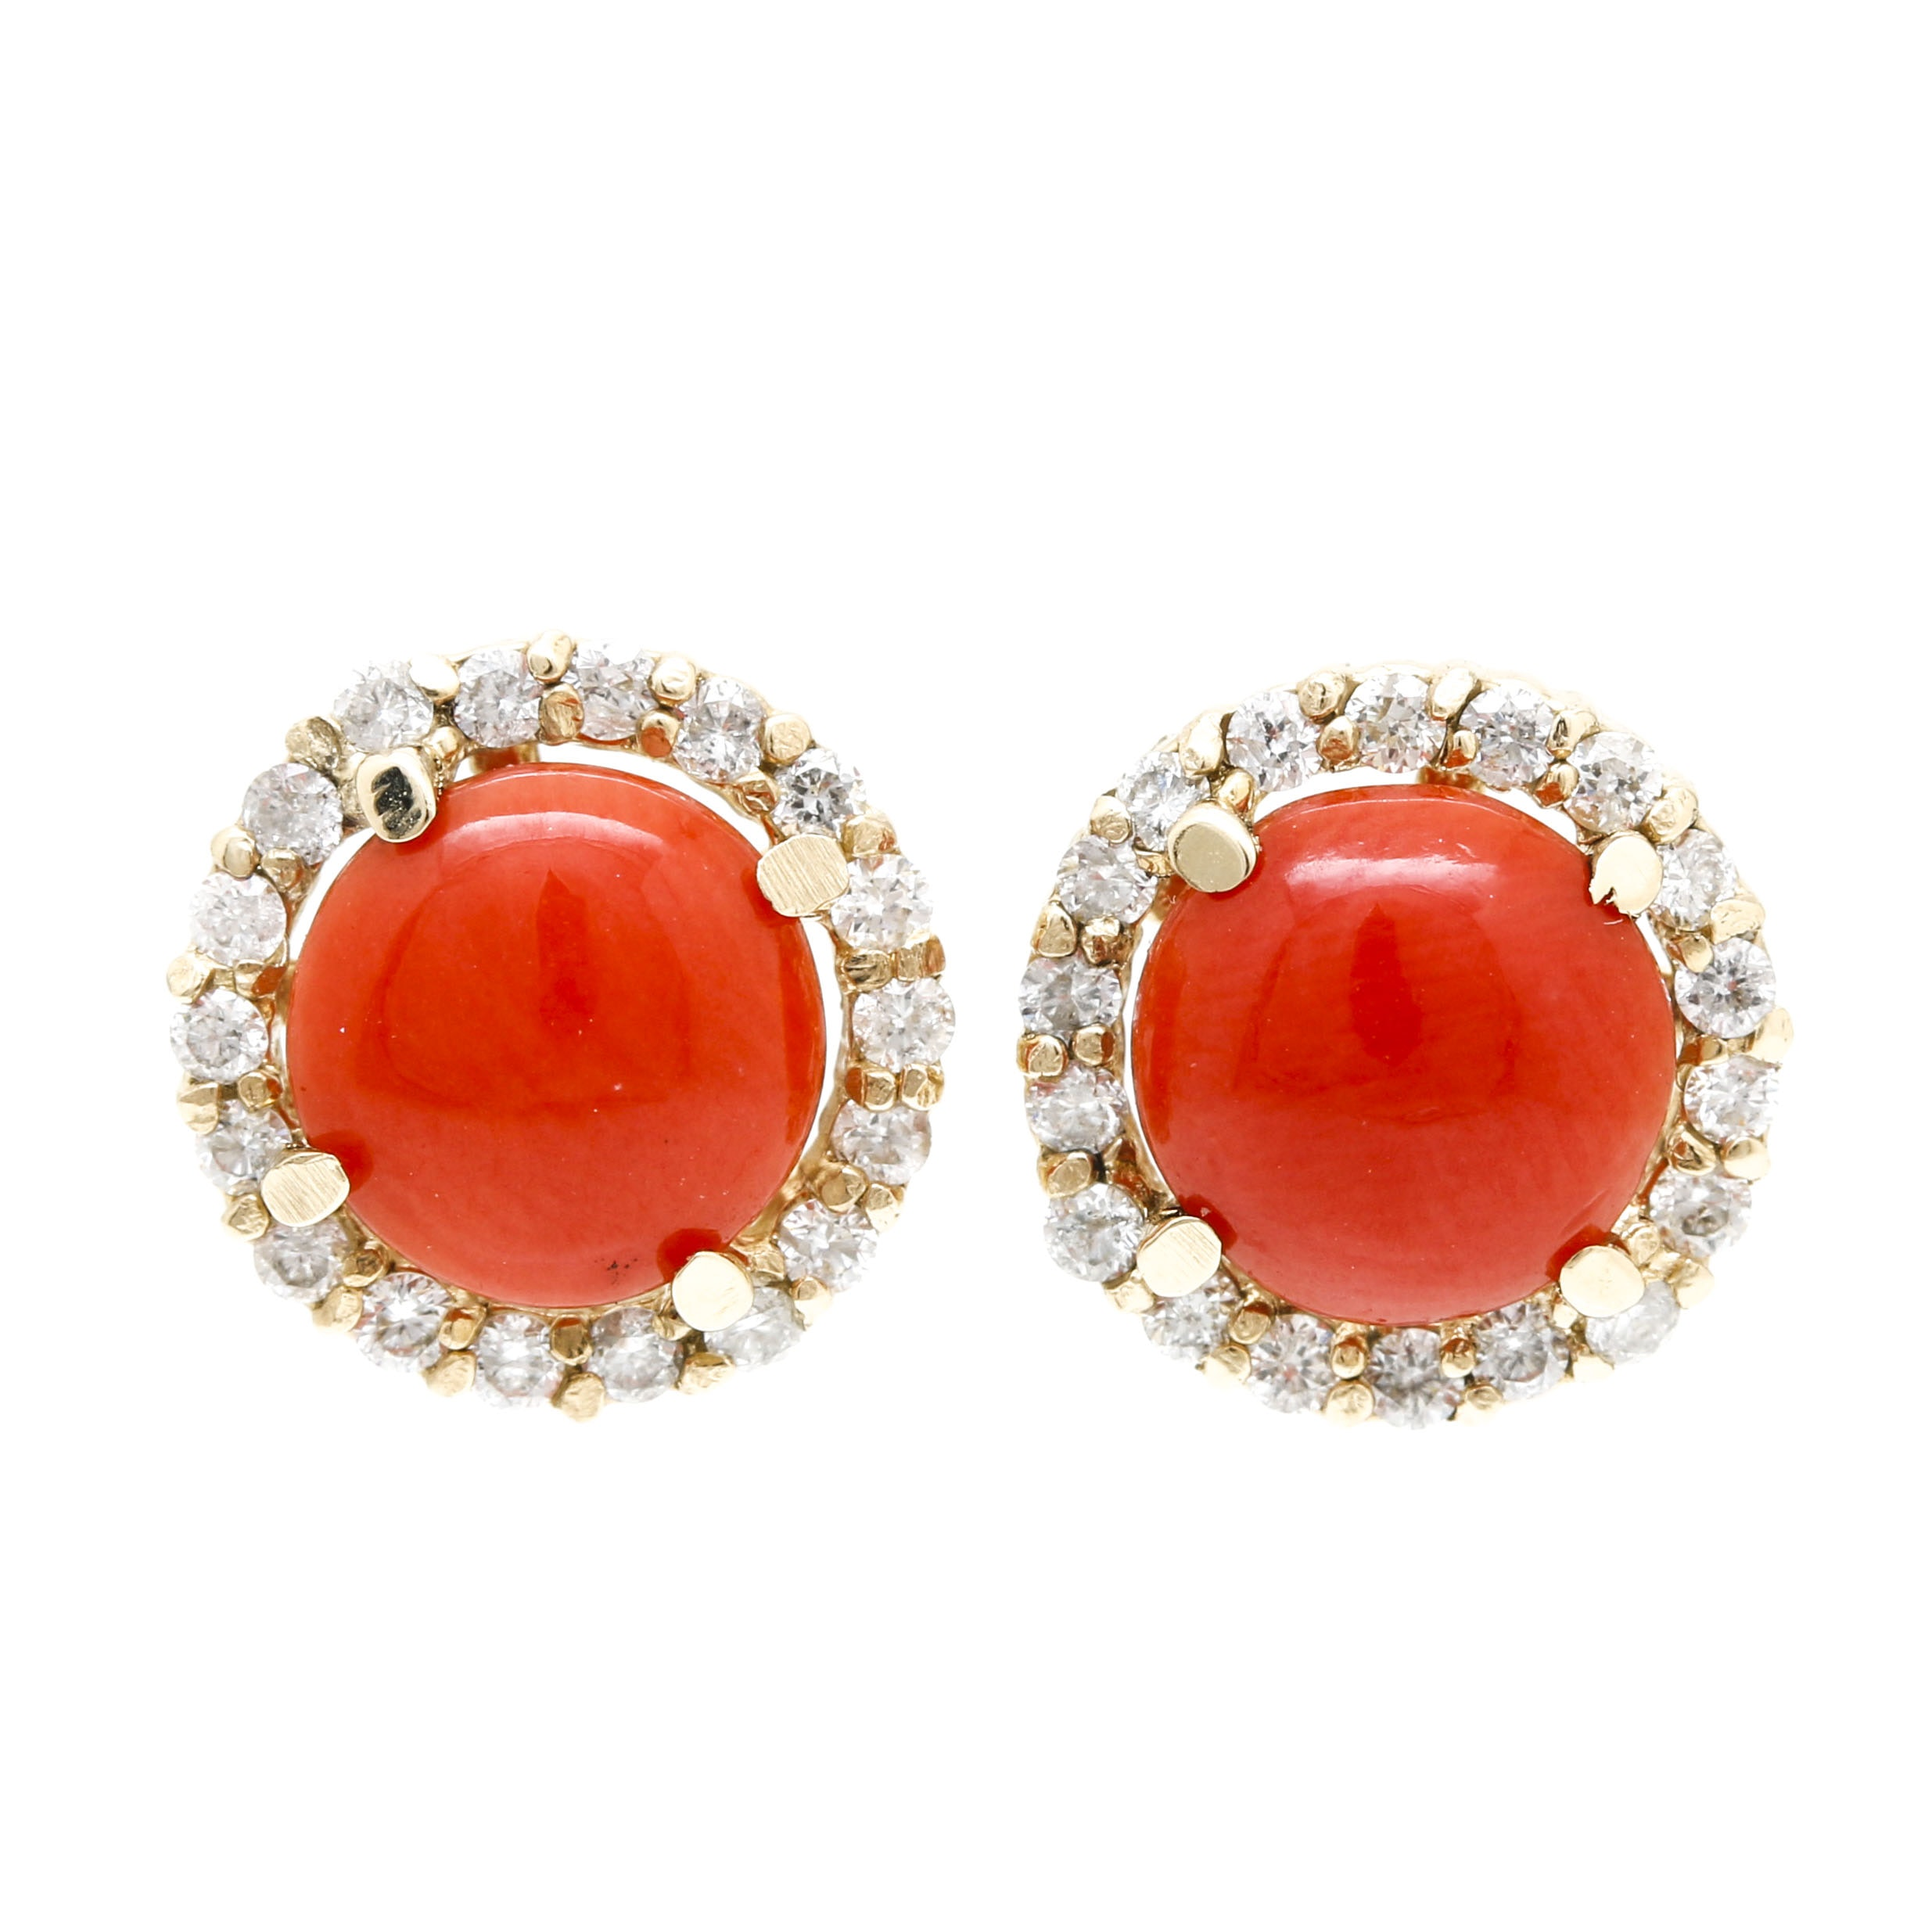 14K Yellow Gold Coral and Diamond Halo Earrings